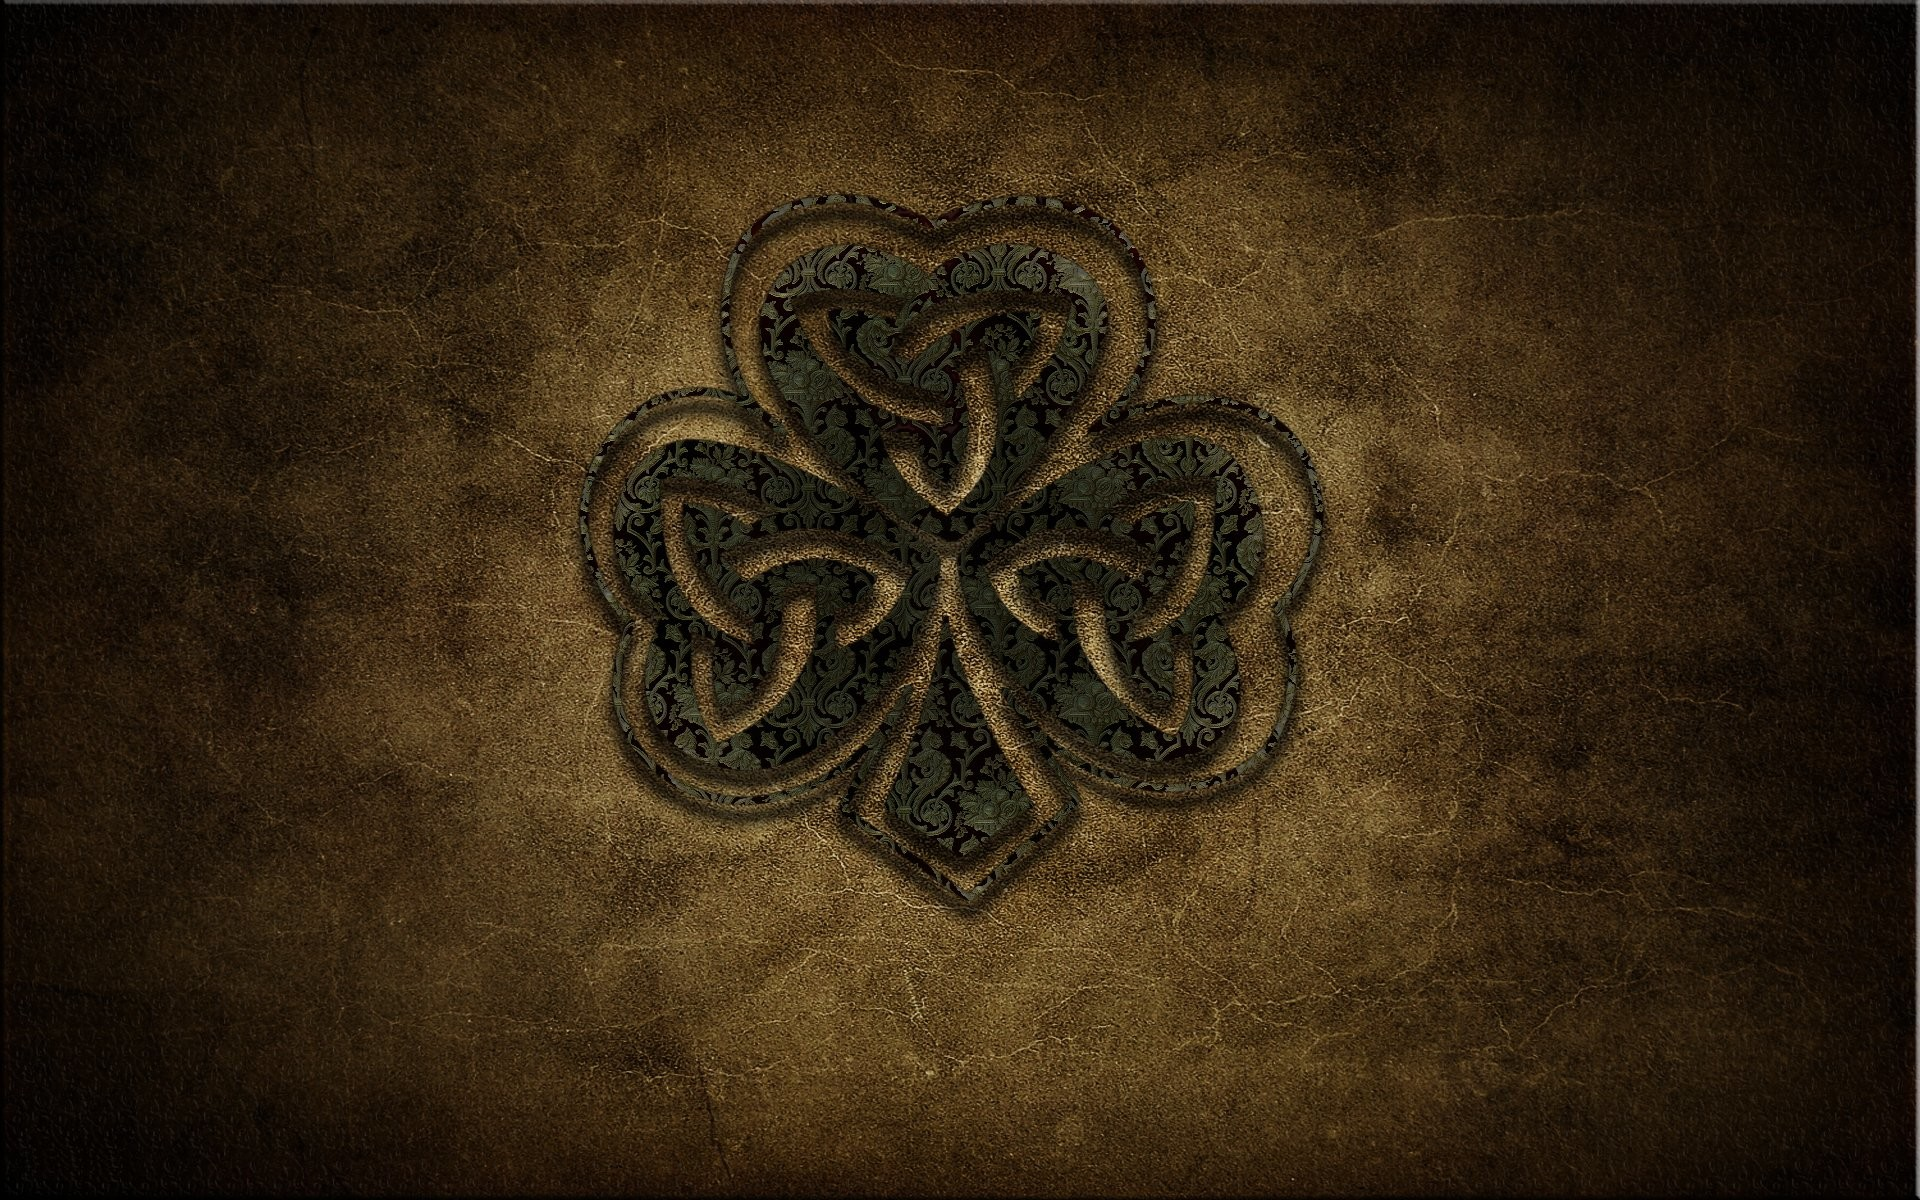 1920x1200 Irish Shamrock HD Widescreen Wallpapers - UKI-Full HD Pics